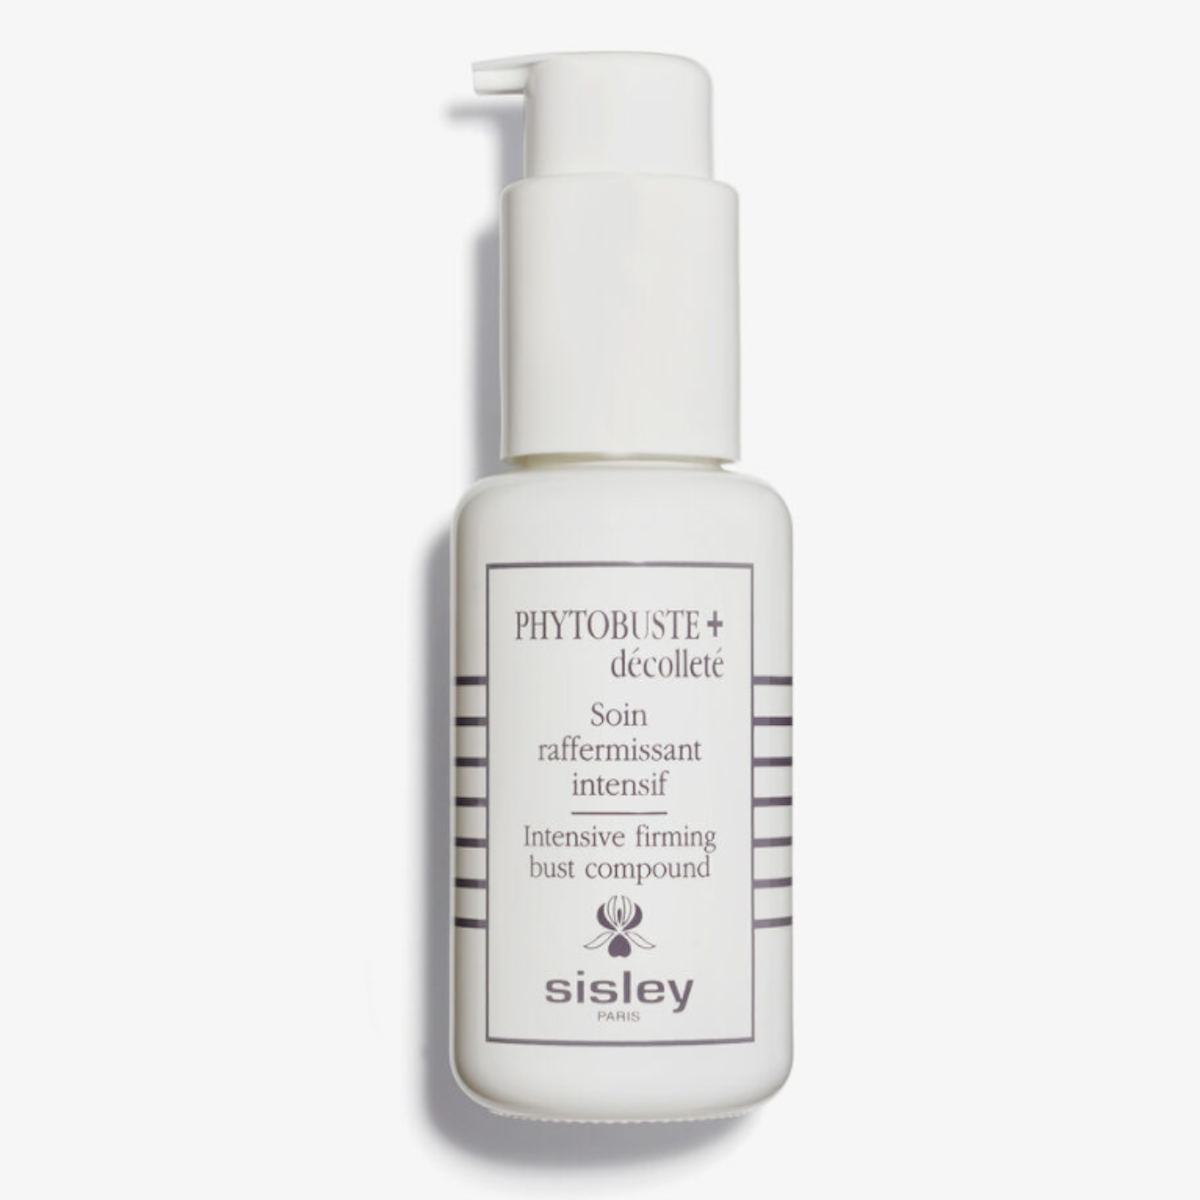 Sisley-Paris Phytobuste and Decollete Intensive Firming Bust Compound